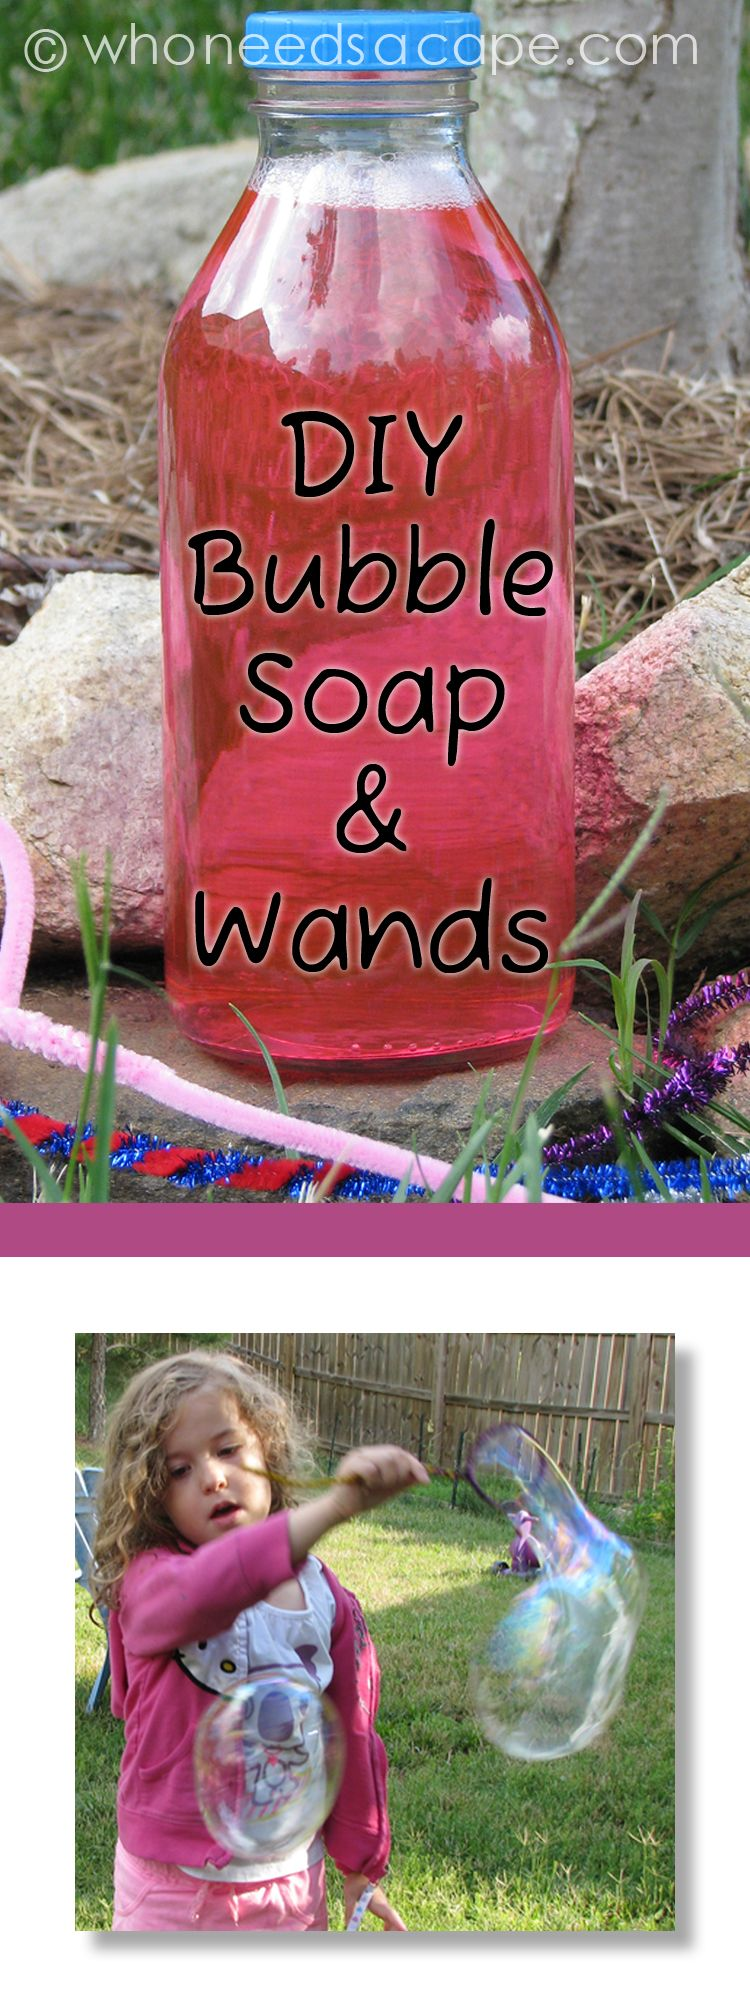 DIY Bubble Soap and Wands — make your own summer fun with